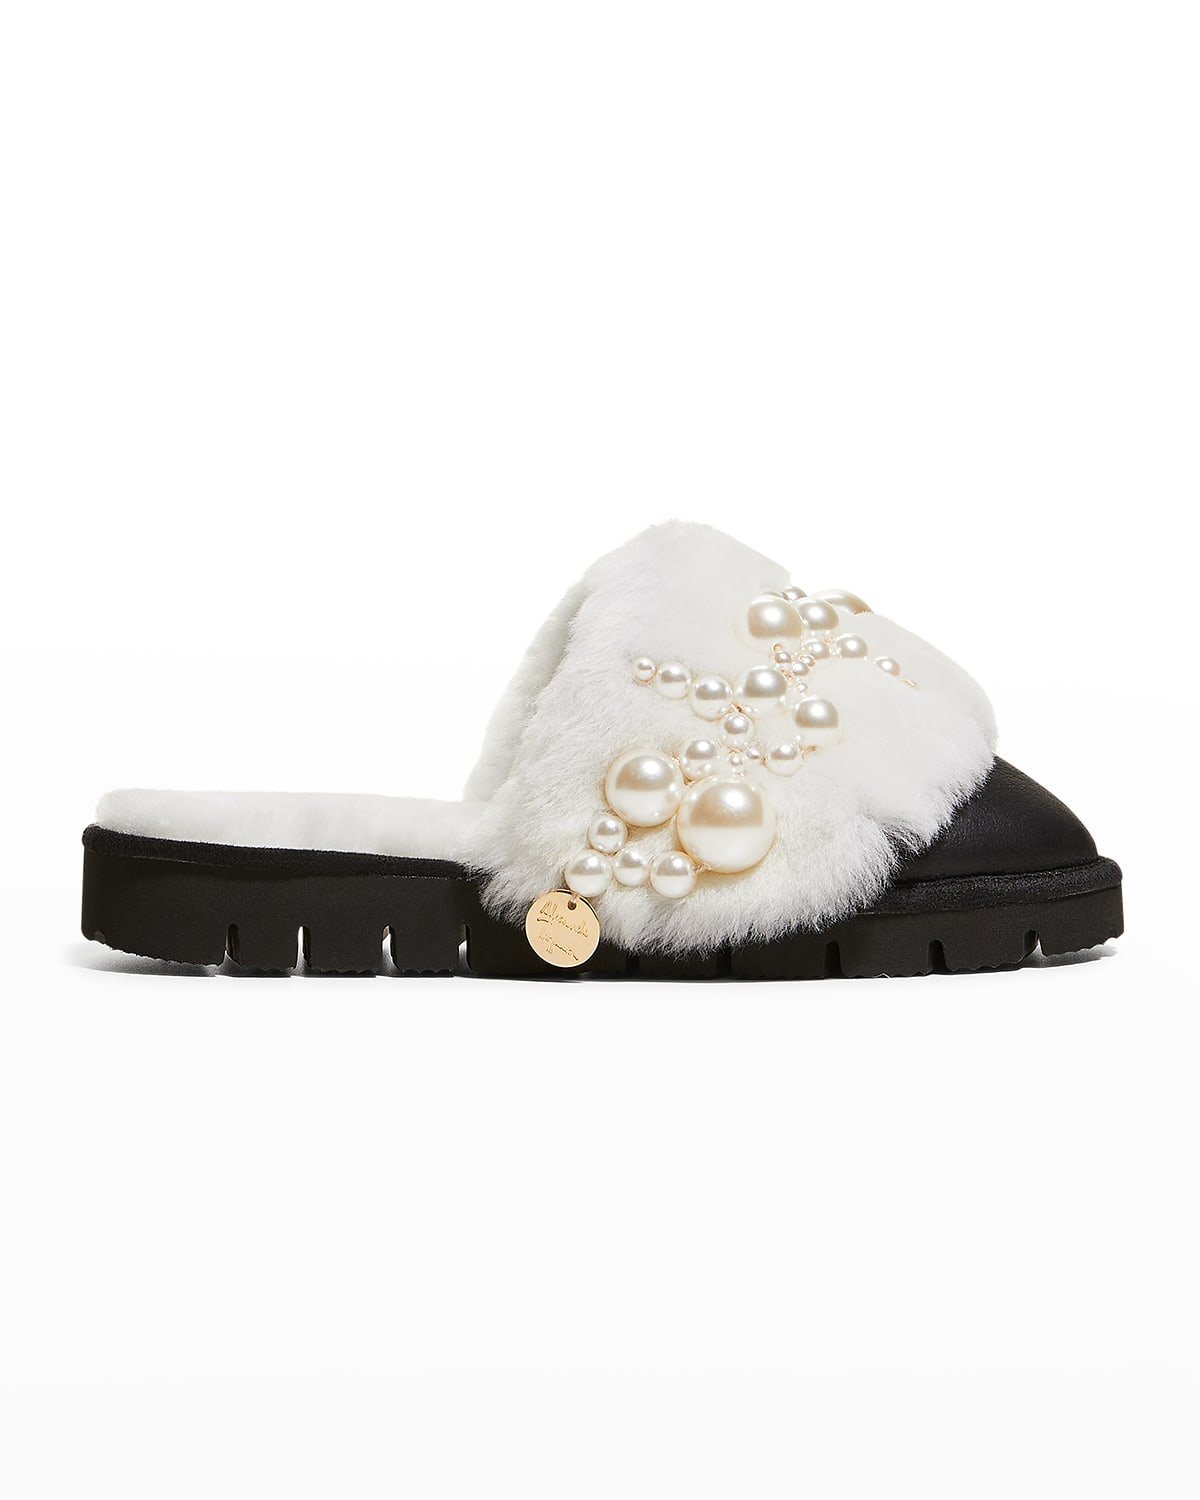 Pinctada Pearly Leather Mule Slippers